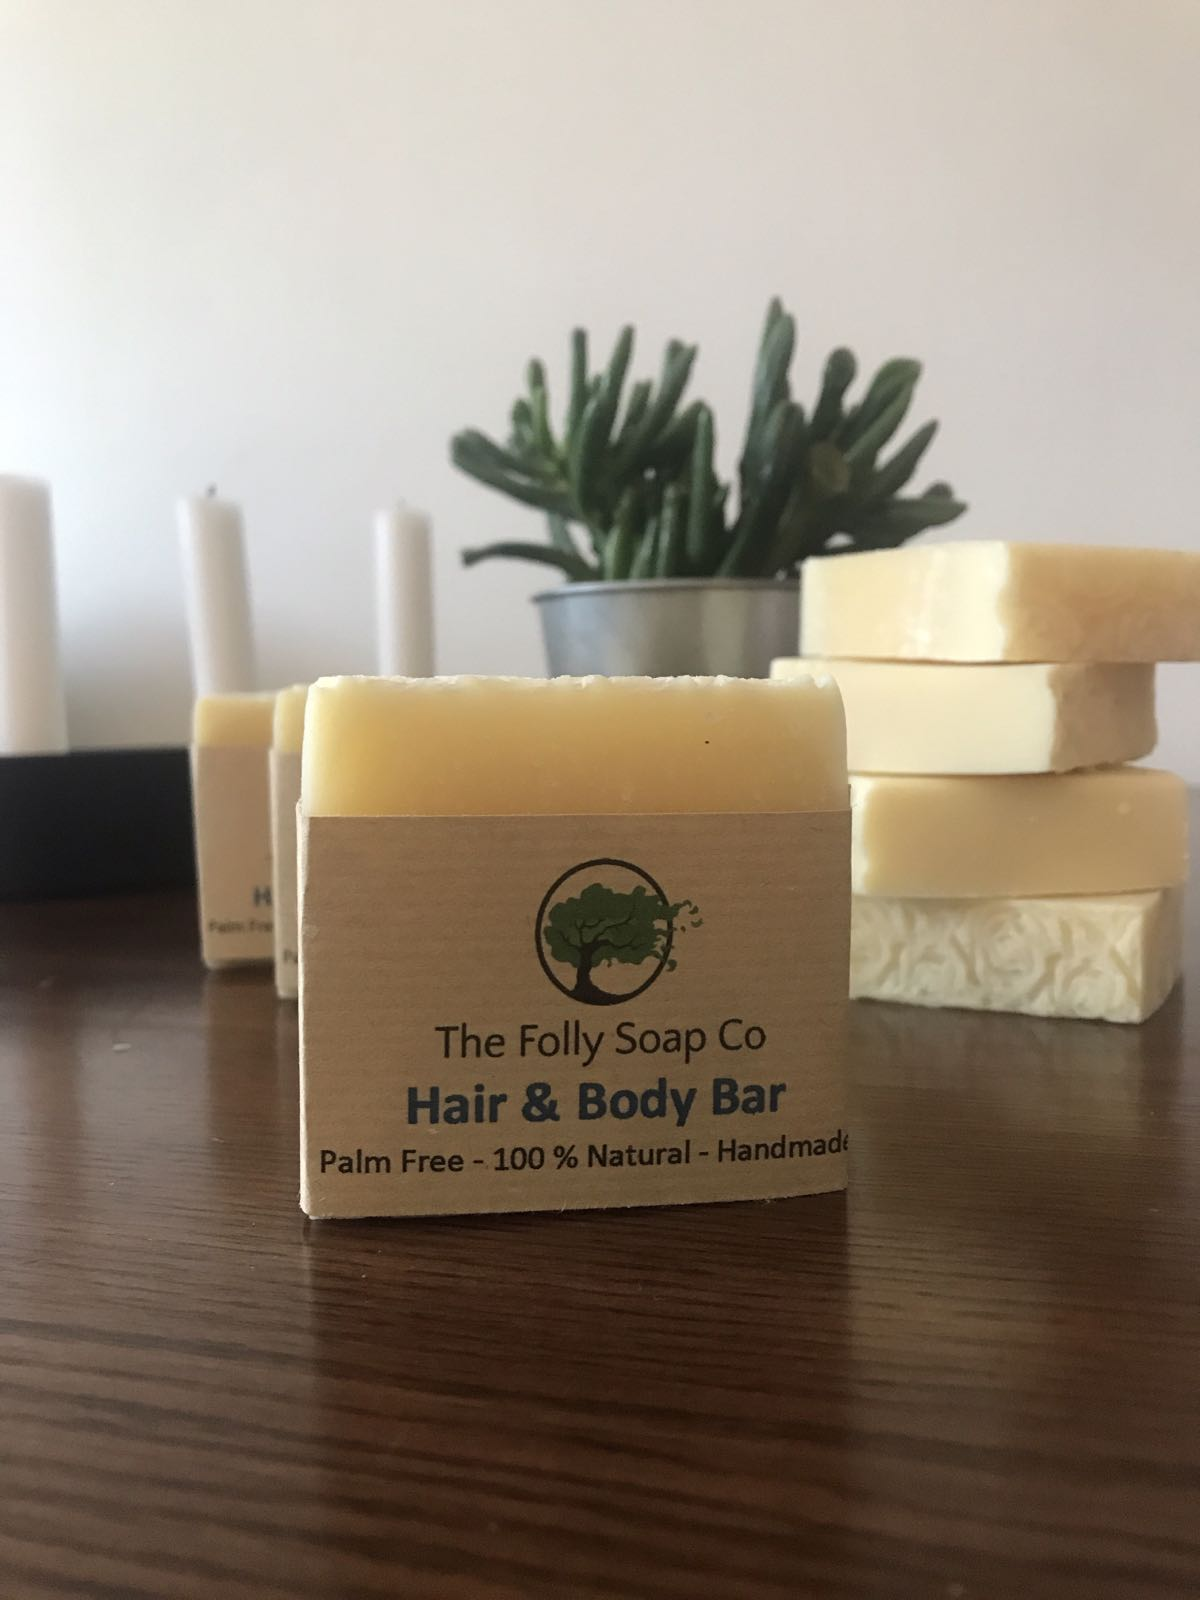 Hair & Body Bar